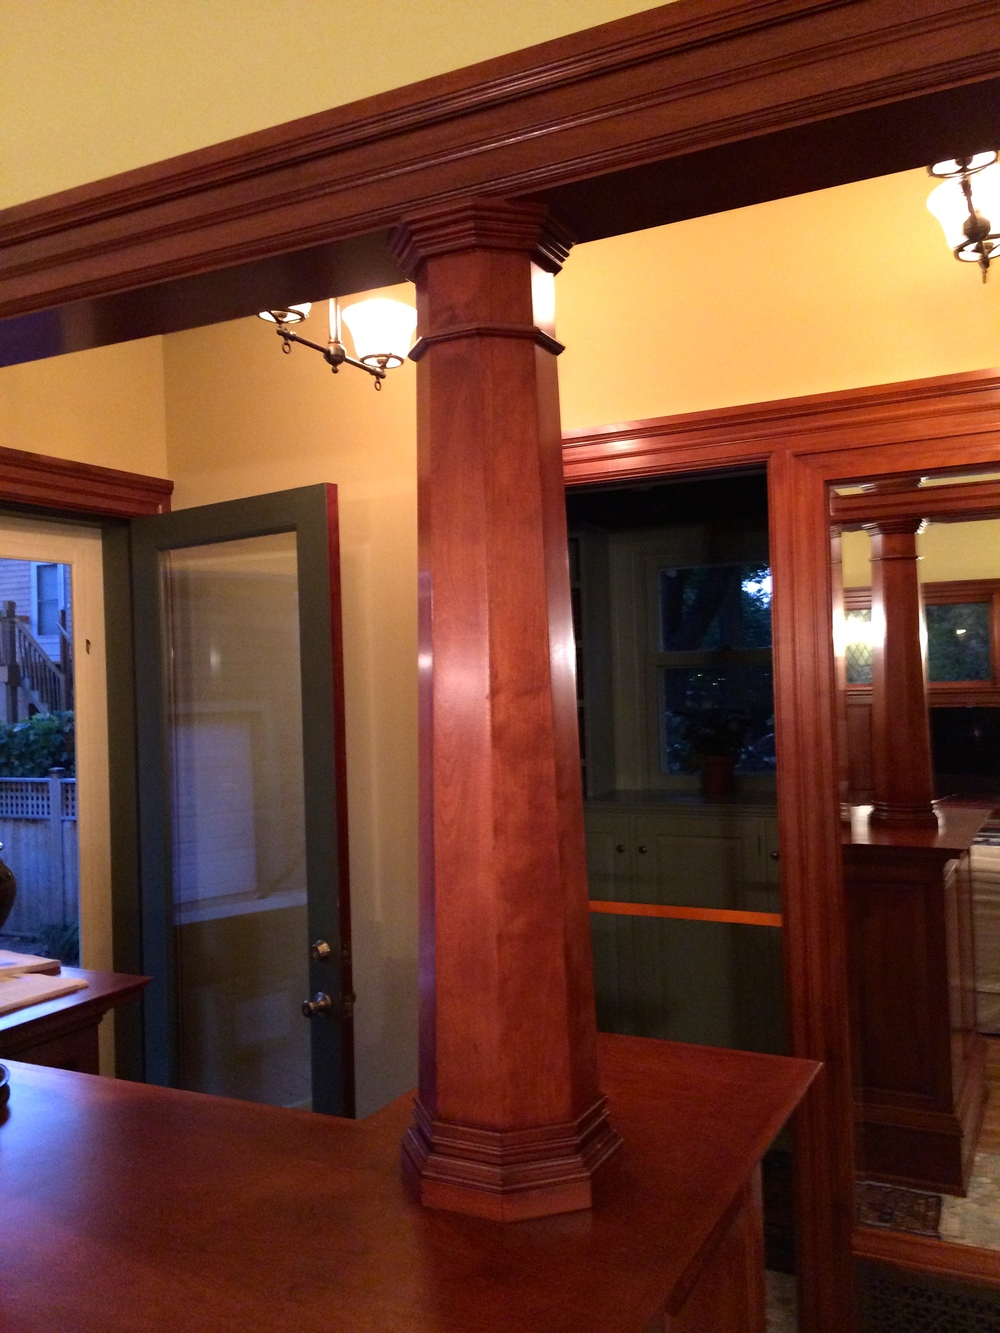 Custom octagonal pillar I made of Red Birch to match the interior woodwork on this classic Minneapolis home.